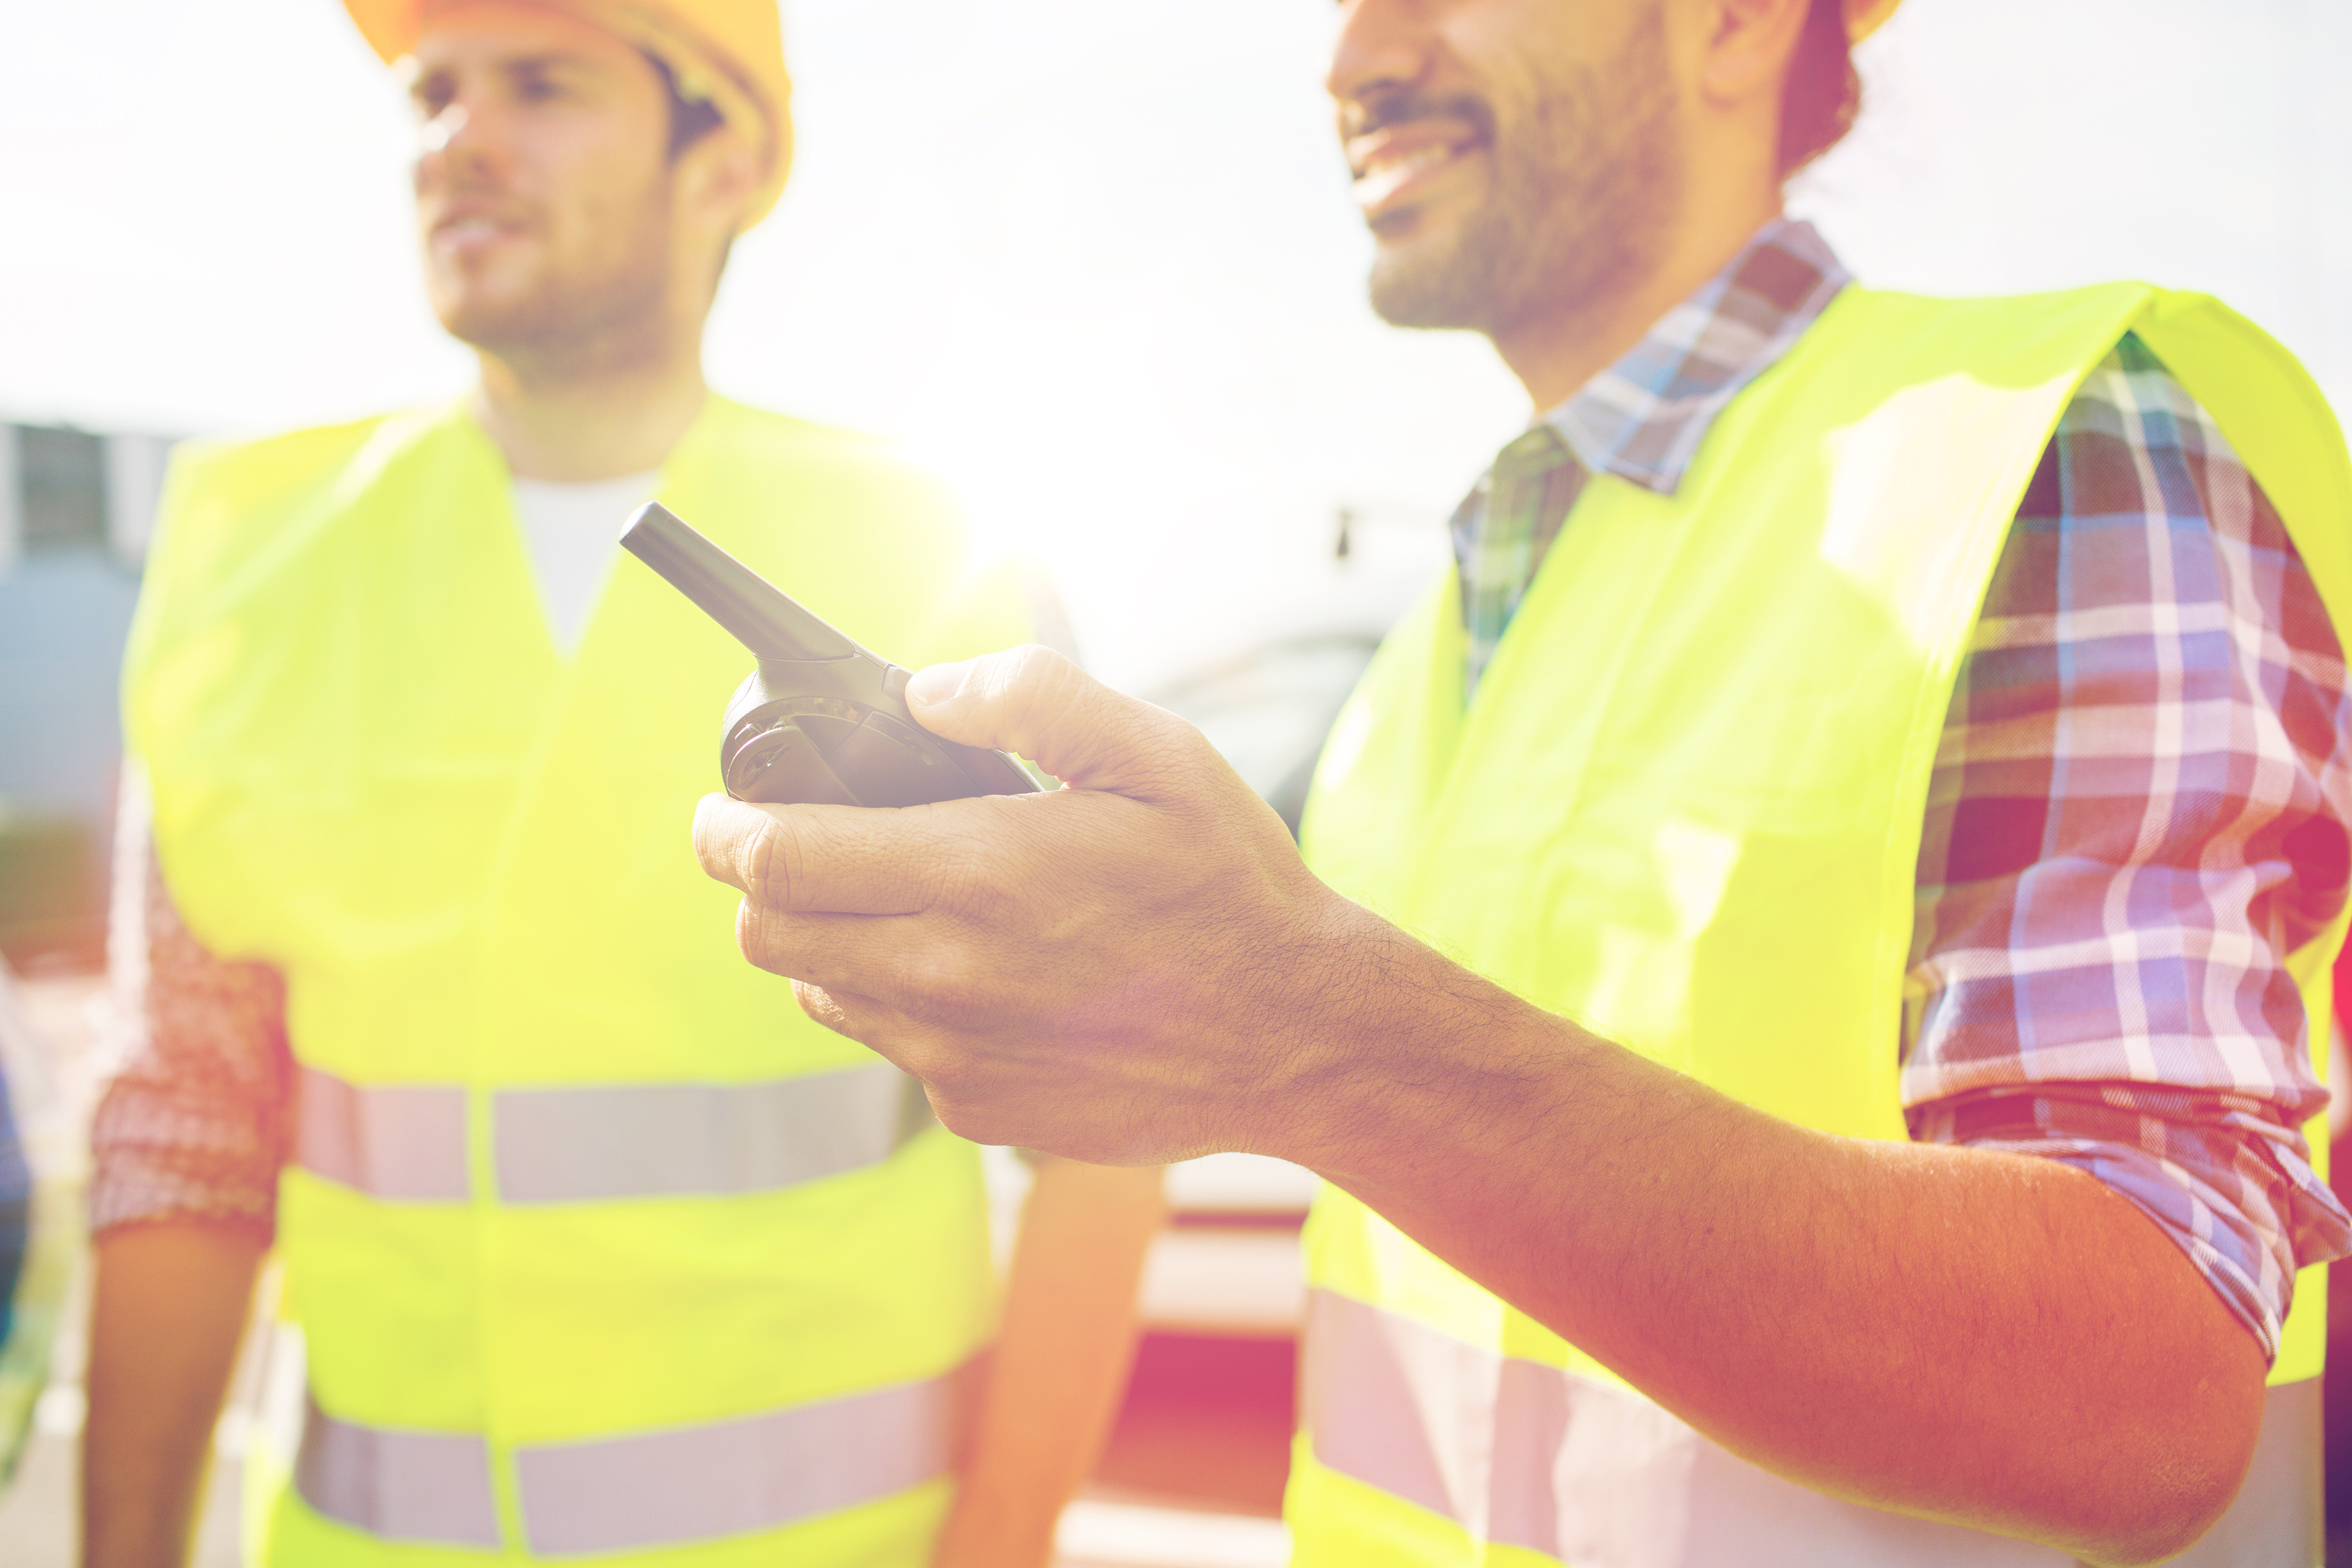 industry, building, technology and people concept - close up of male builders in high visible vests with walkie talkie or radio outdoors